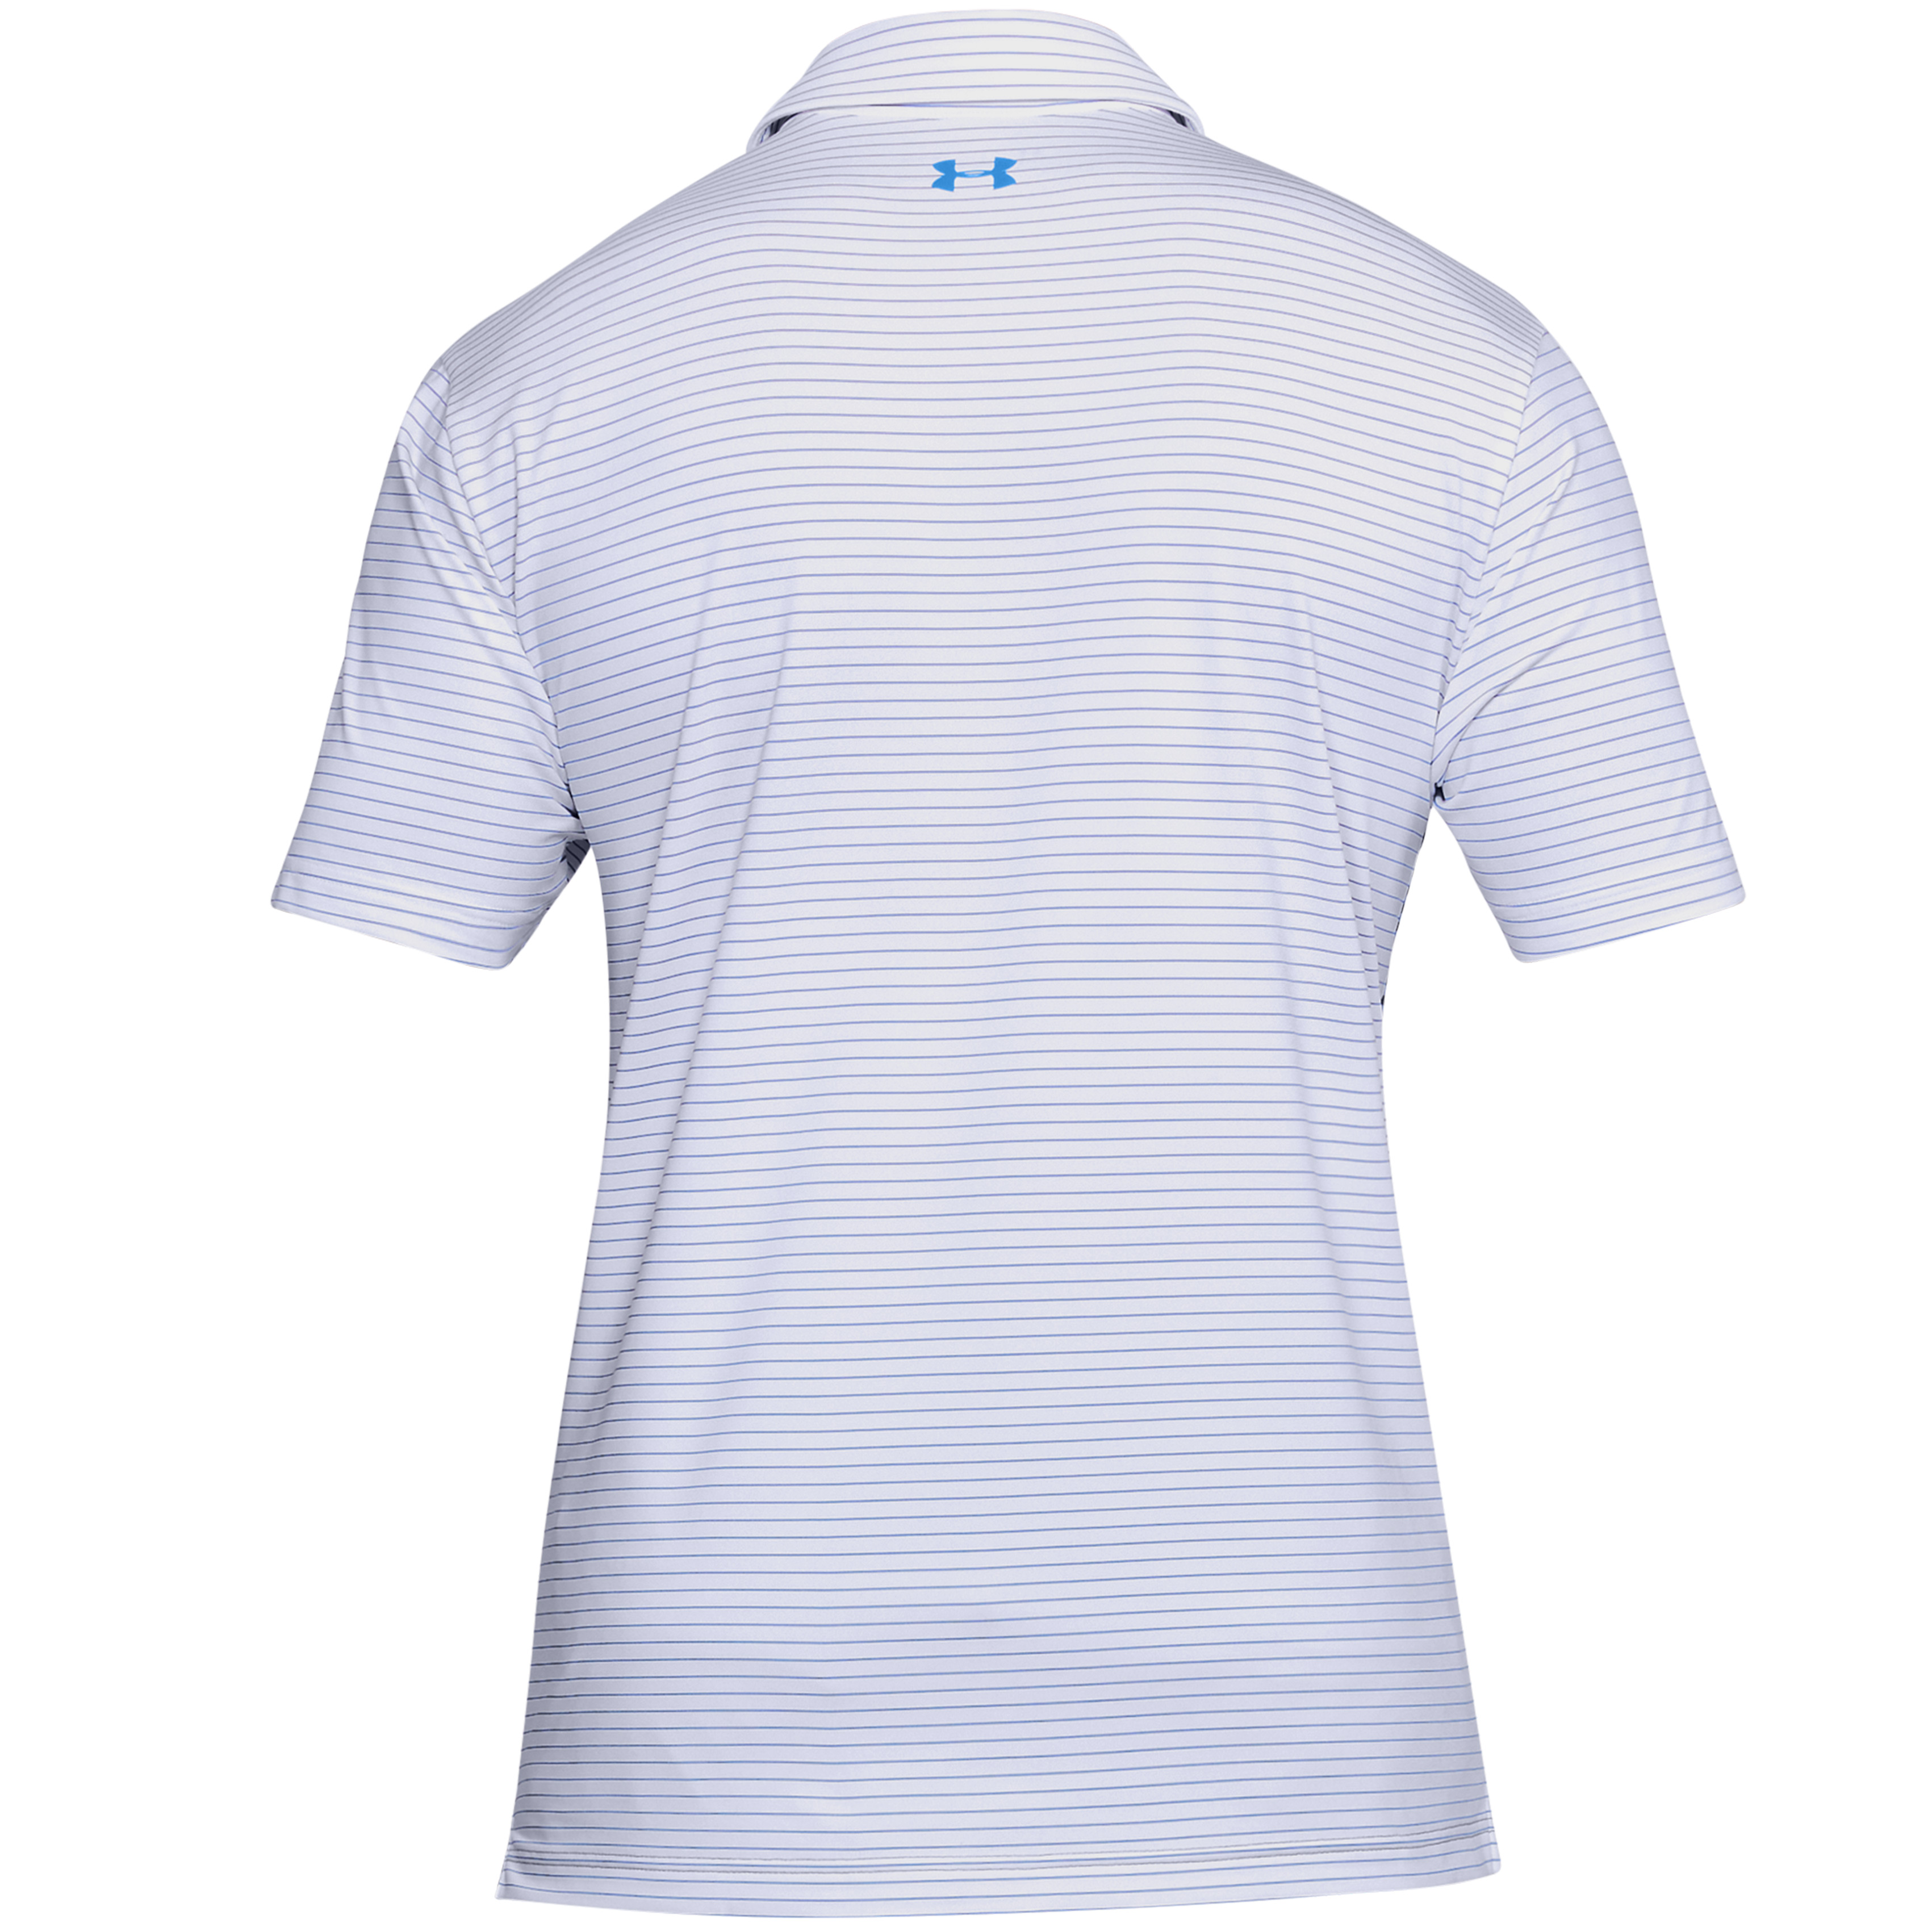 Under-Armour-Mens-UA-Playoff-Performance-Golf-Polo-Shirt-33-OFF-RRP thumbnail 123